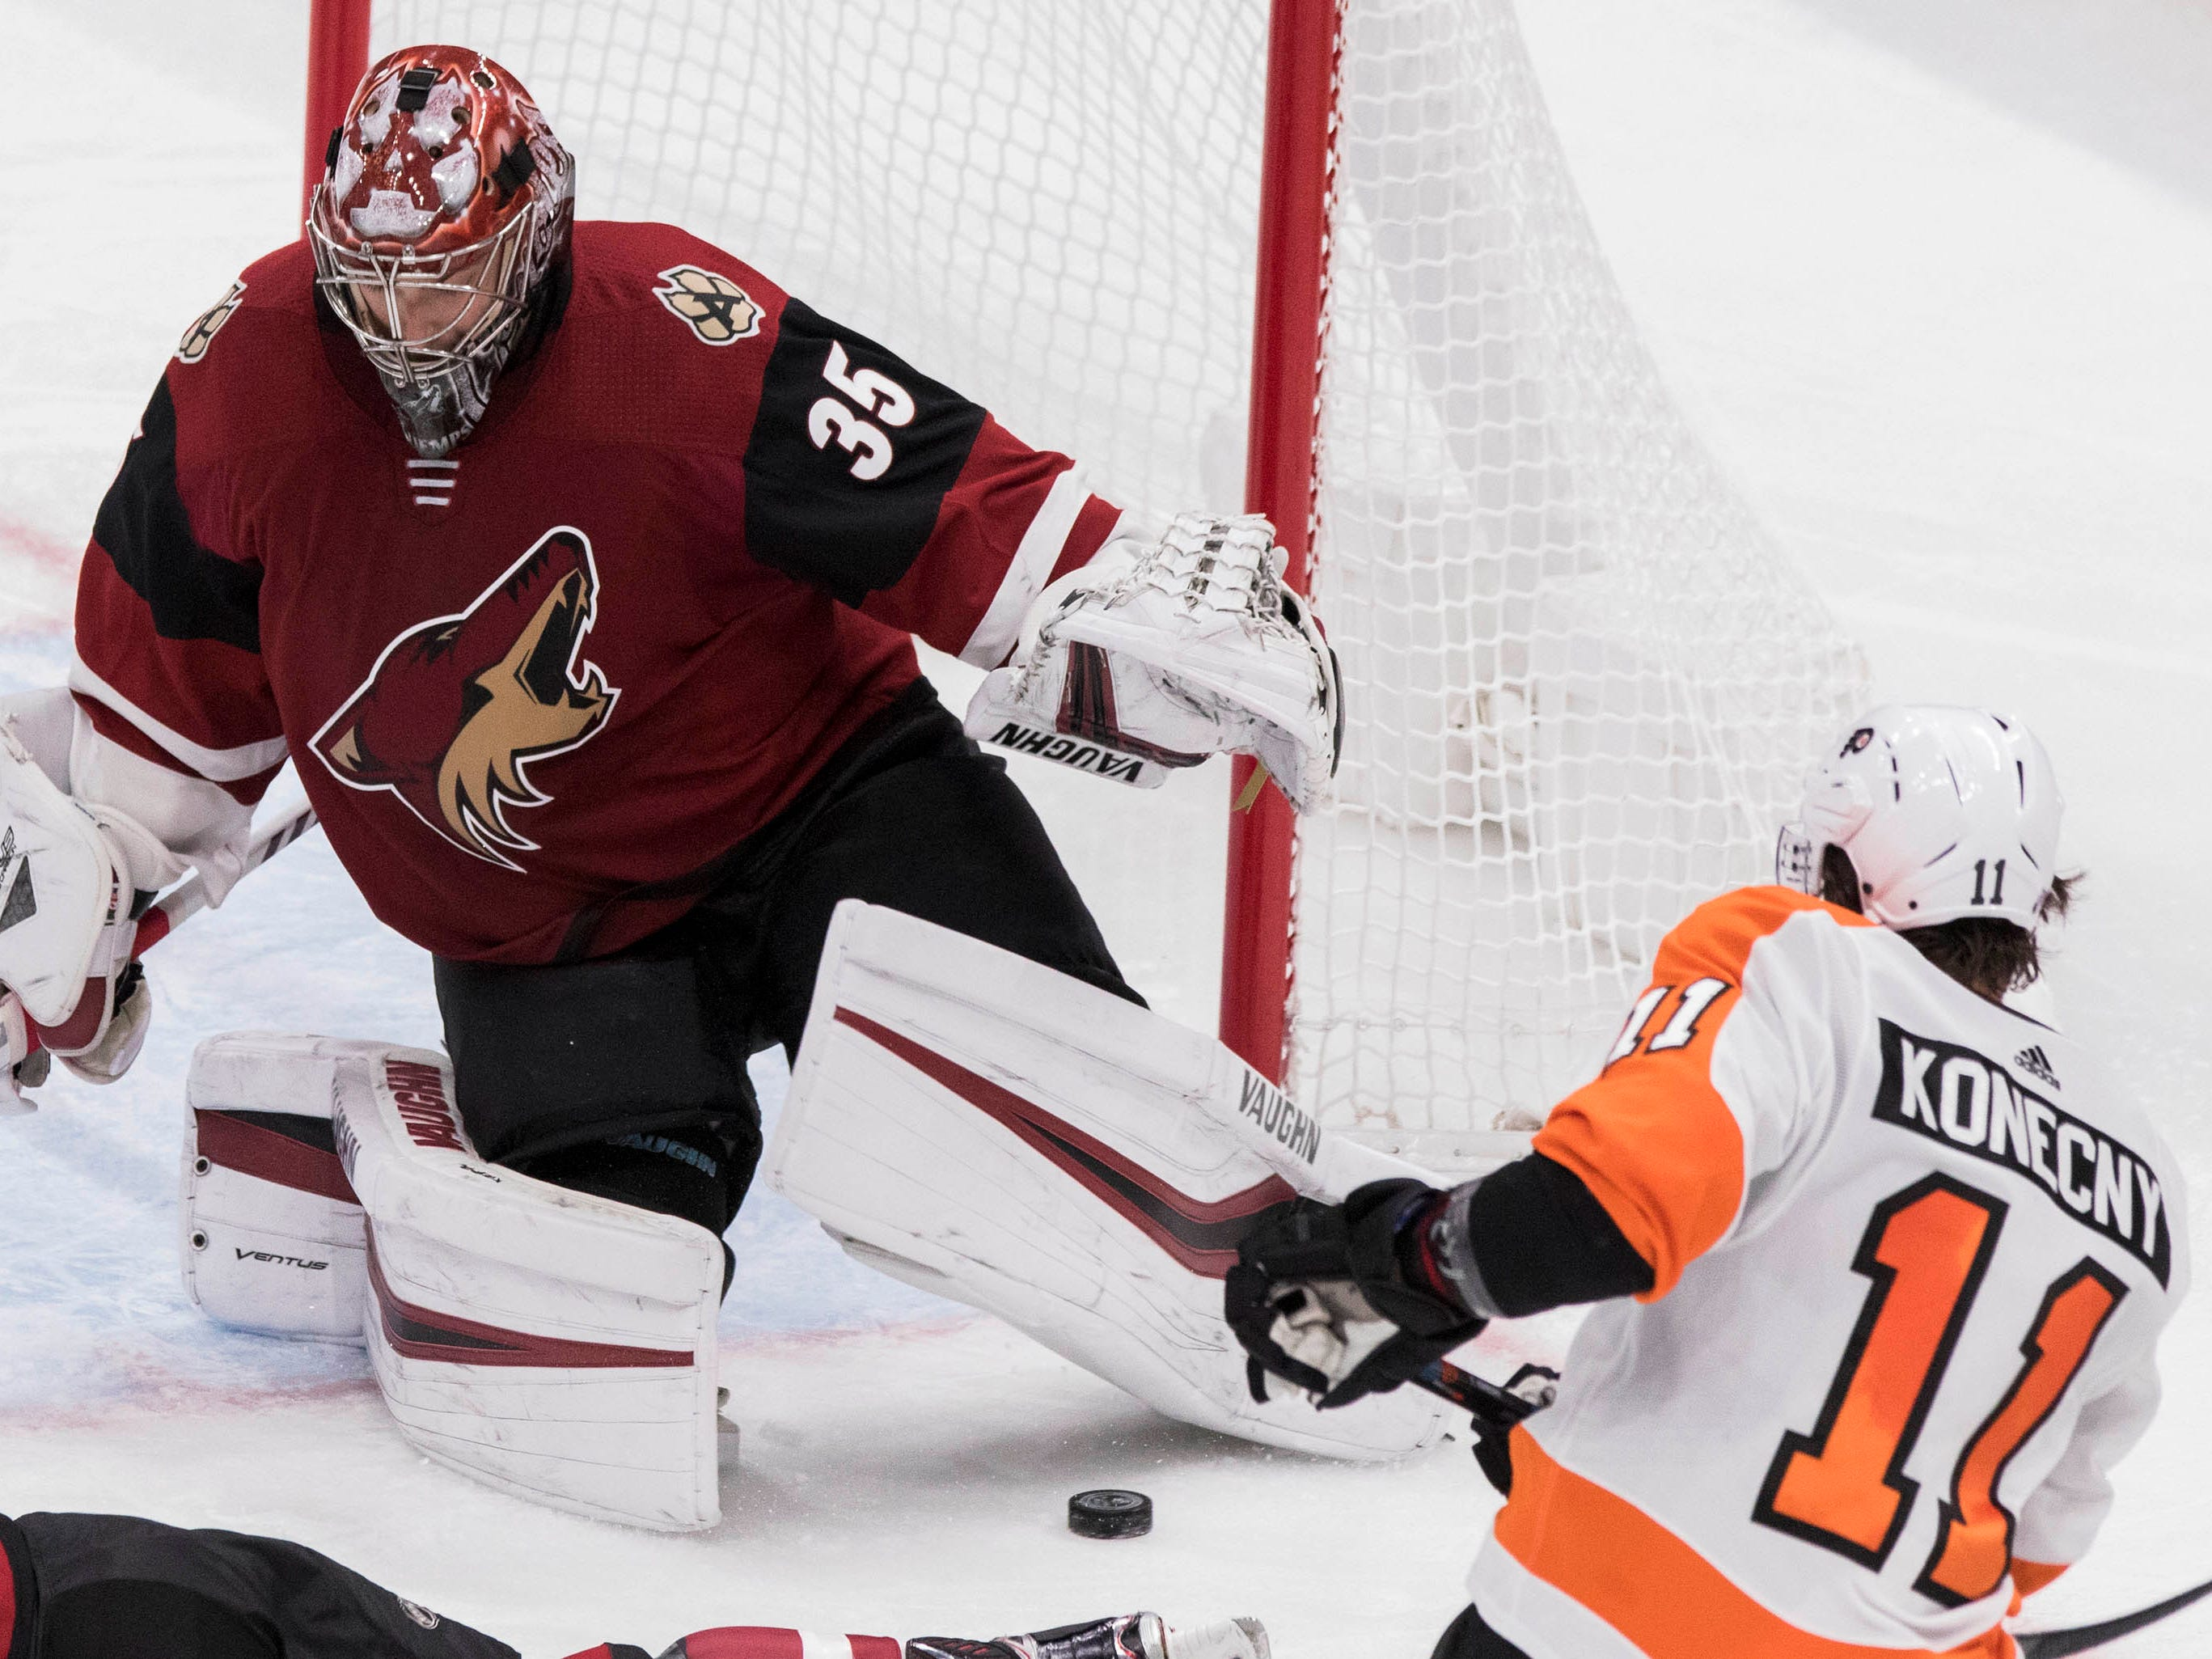 Arizona Coyotes goalie Darcy Kuemper (35) deflects a shot from the Philadelphia Flyers' Travis Konecny (11) during the second period of an NHL hockey game Monday, Nov. 5, 2018, in Glendale, Ariz. (AP Photo/Darryl Webb)